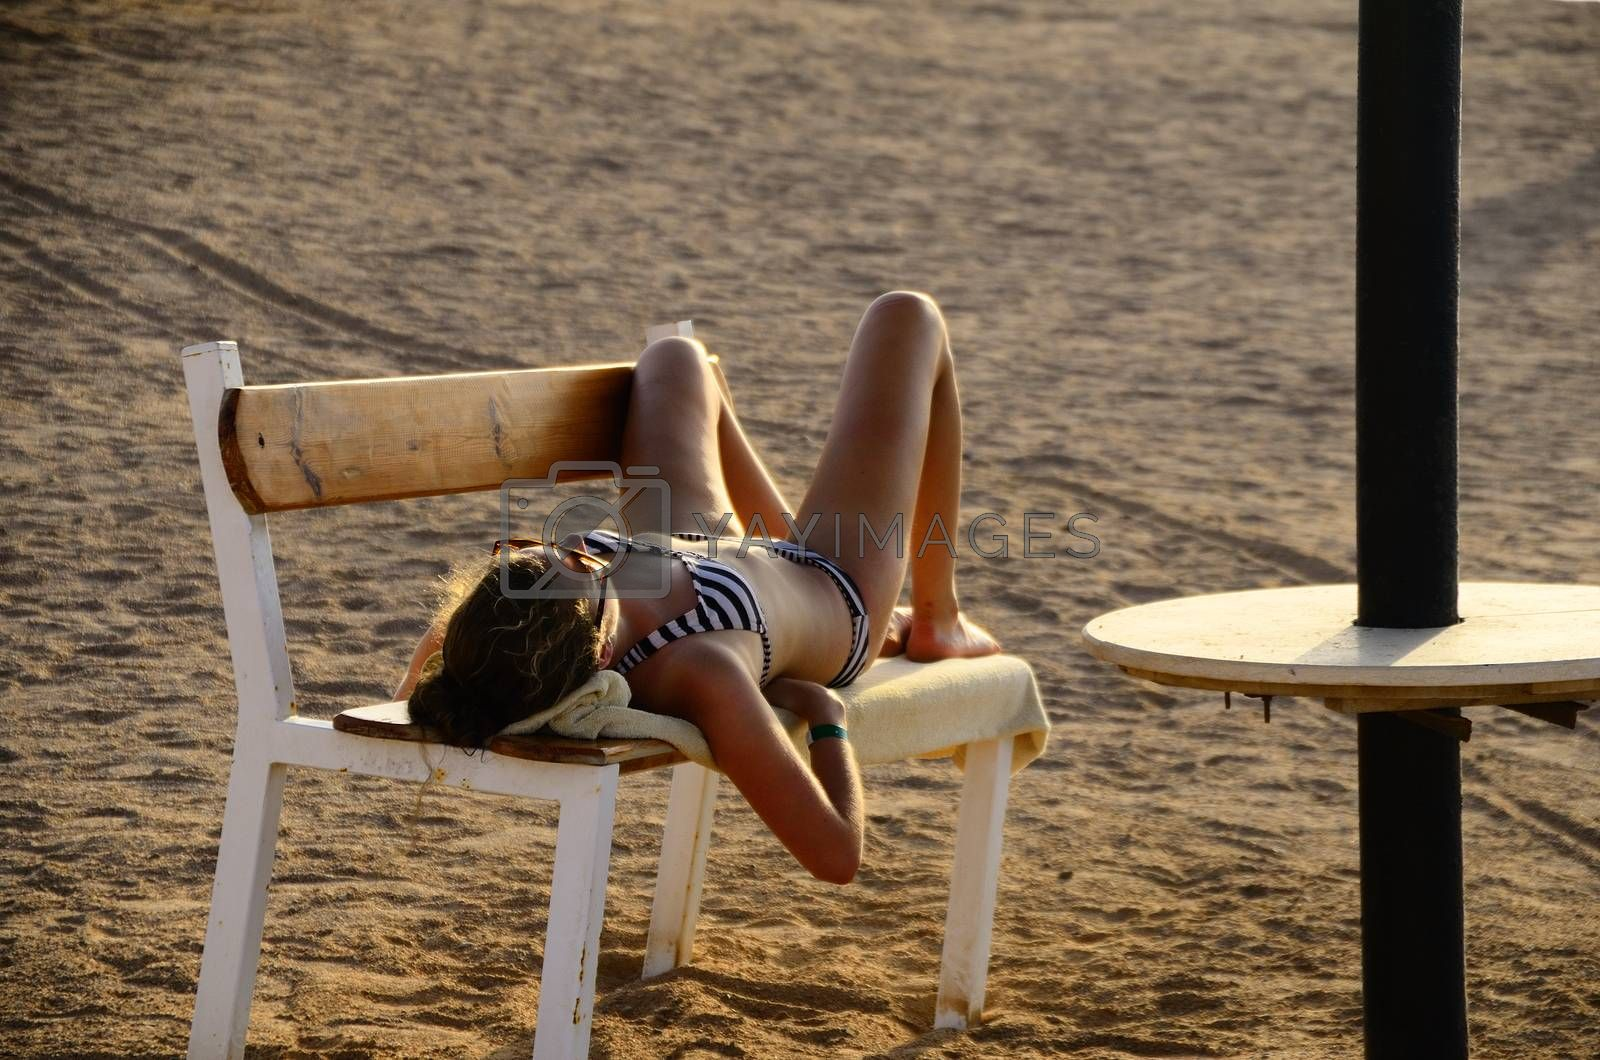 young woman in bikini sleeping on a bench on the sandy beach on vacation